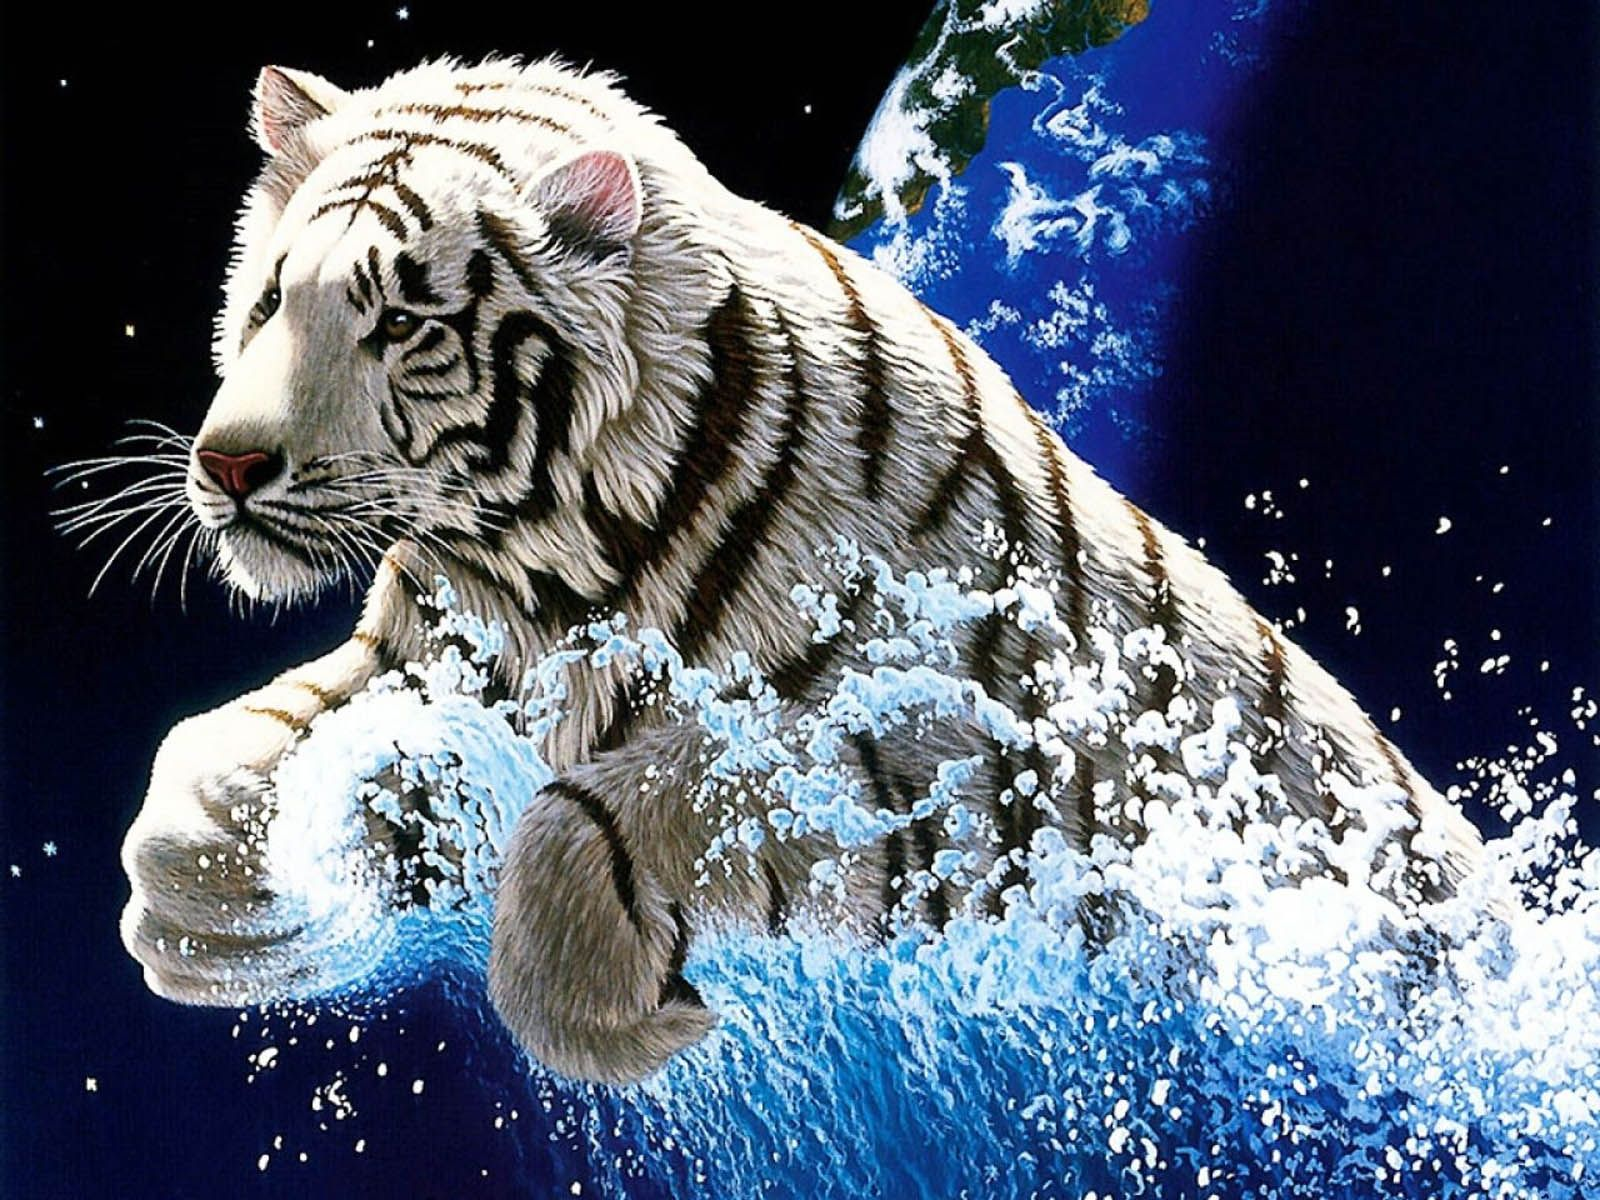 Desktop Year Of The Tiger Images Wallpaper Download 3d Hd Colour